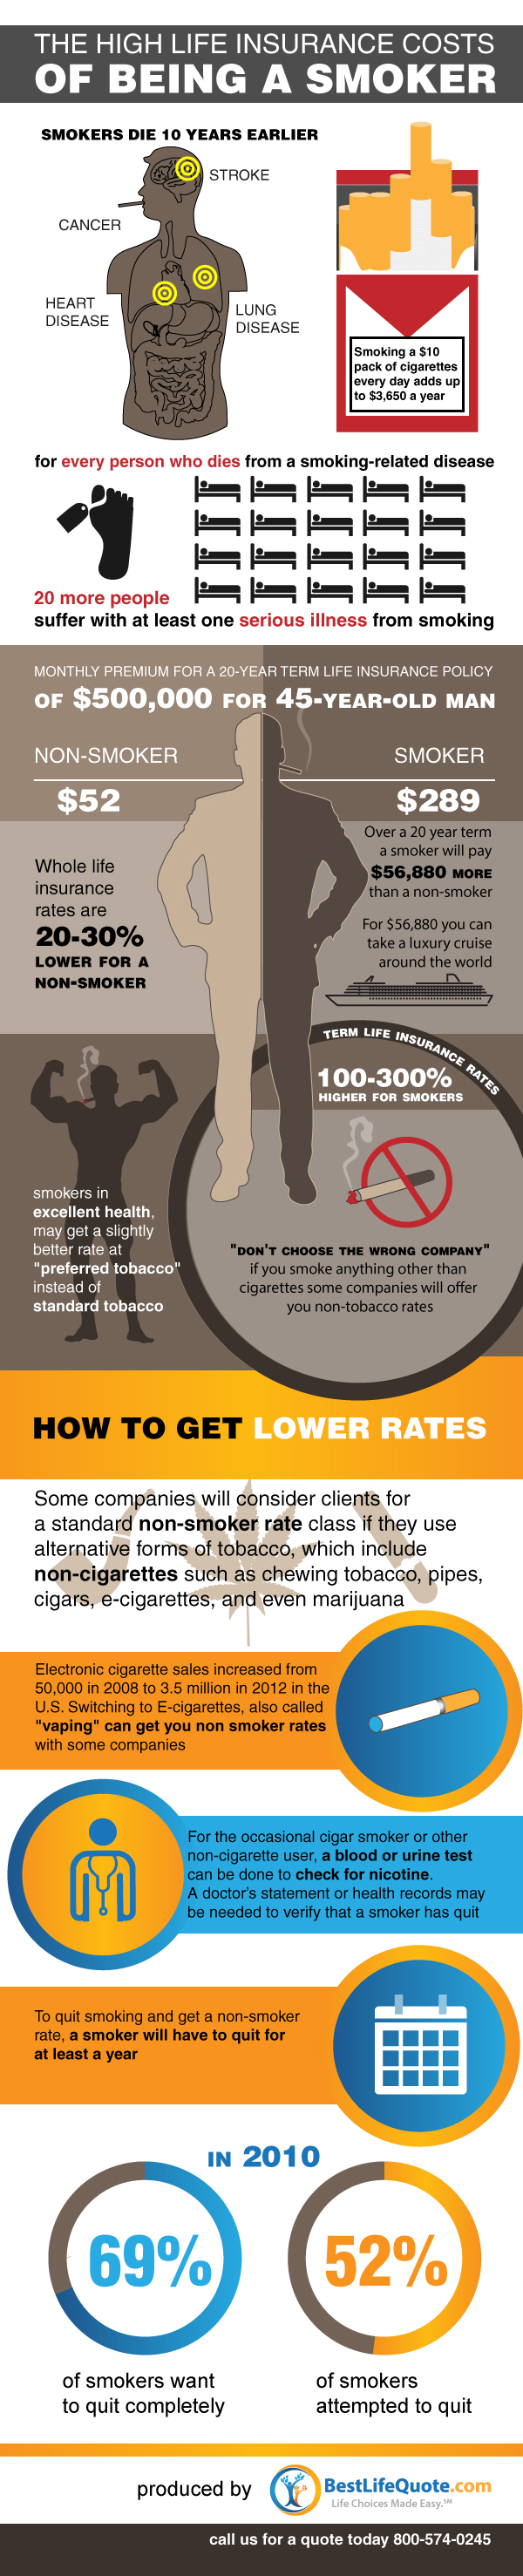 The Real Cost of Smoking: How Hard-earned Money Goes Up in Smoke - Infographic